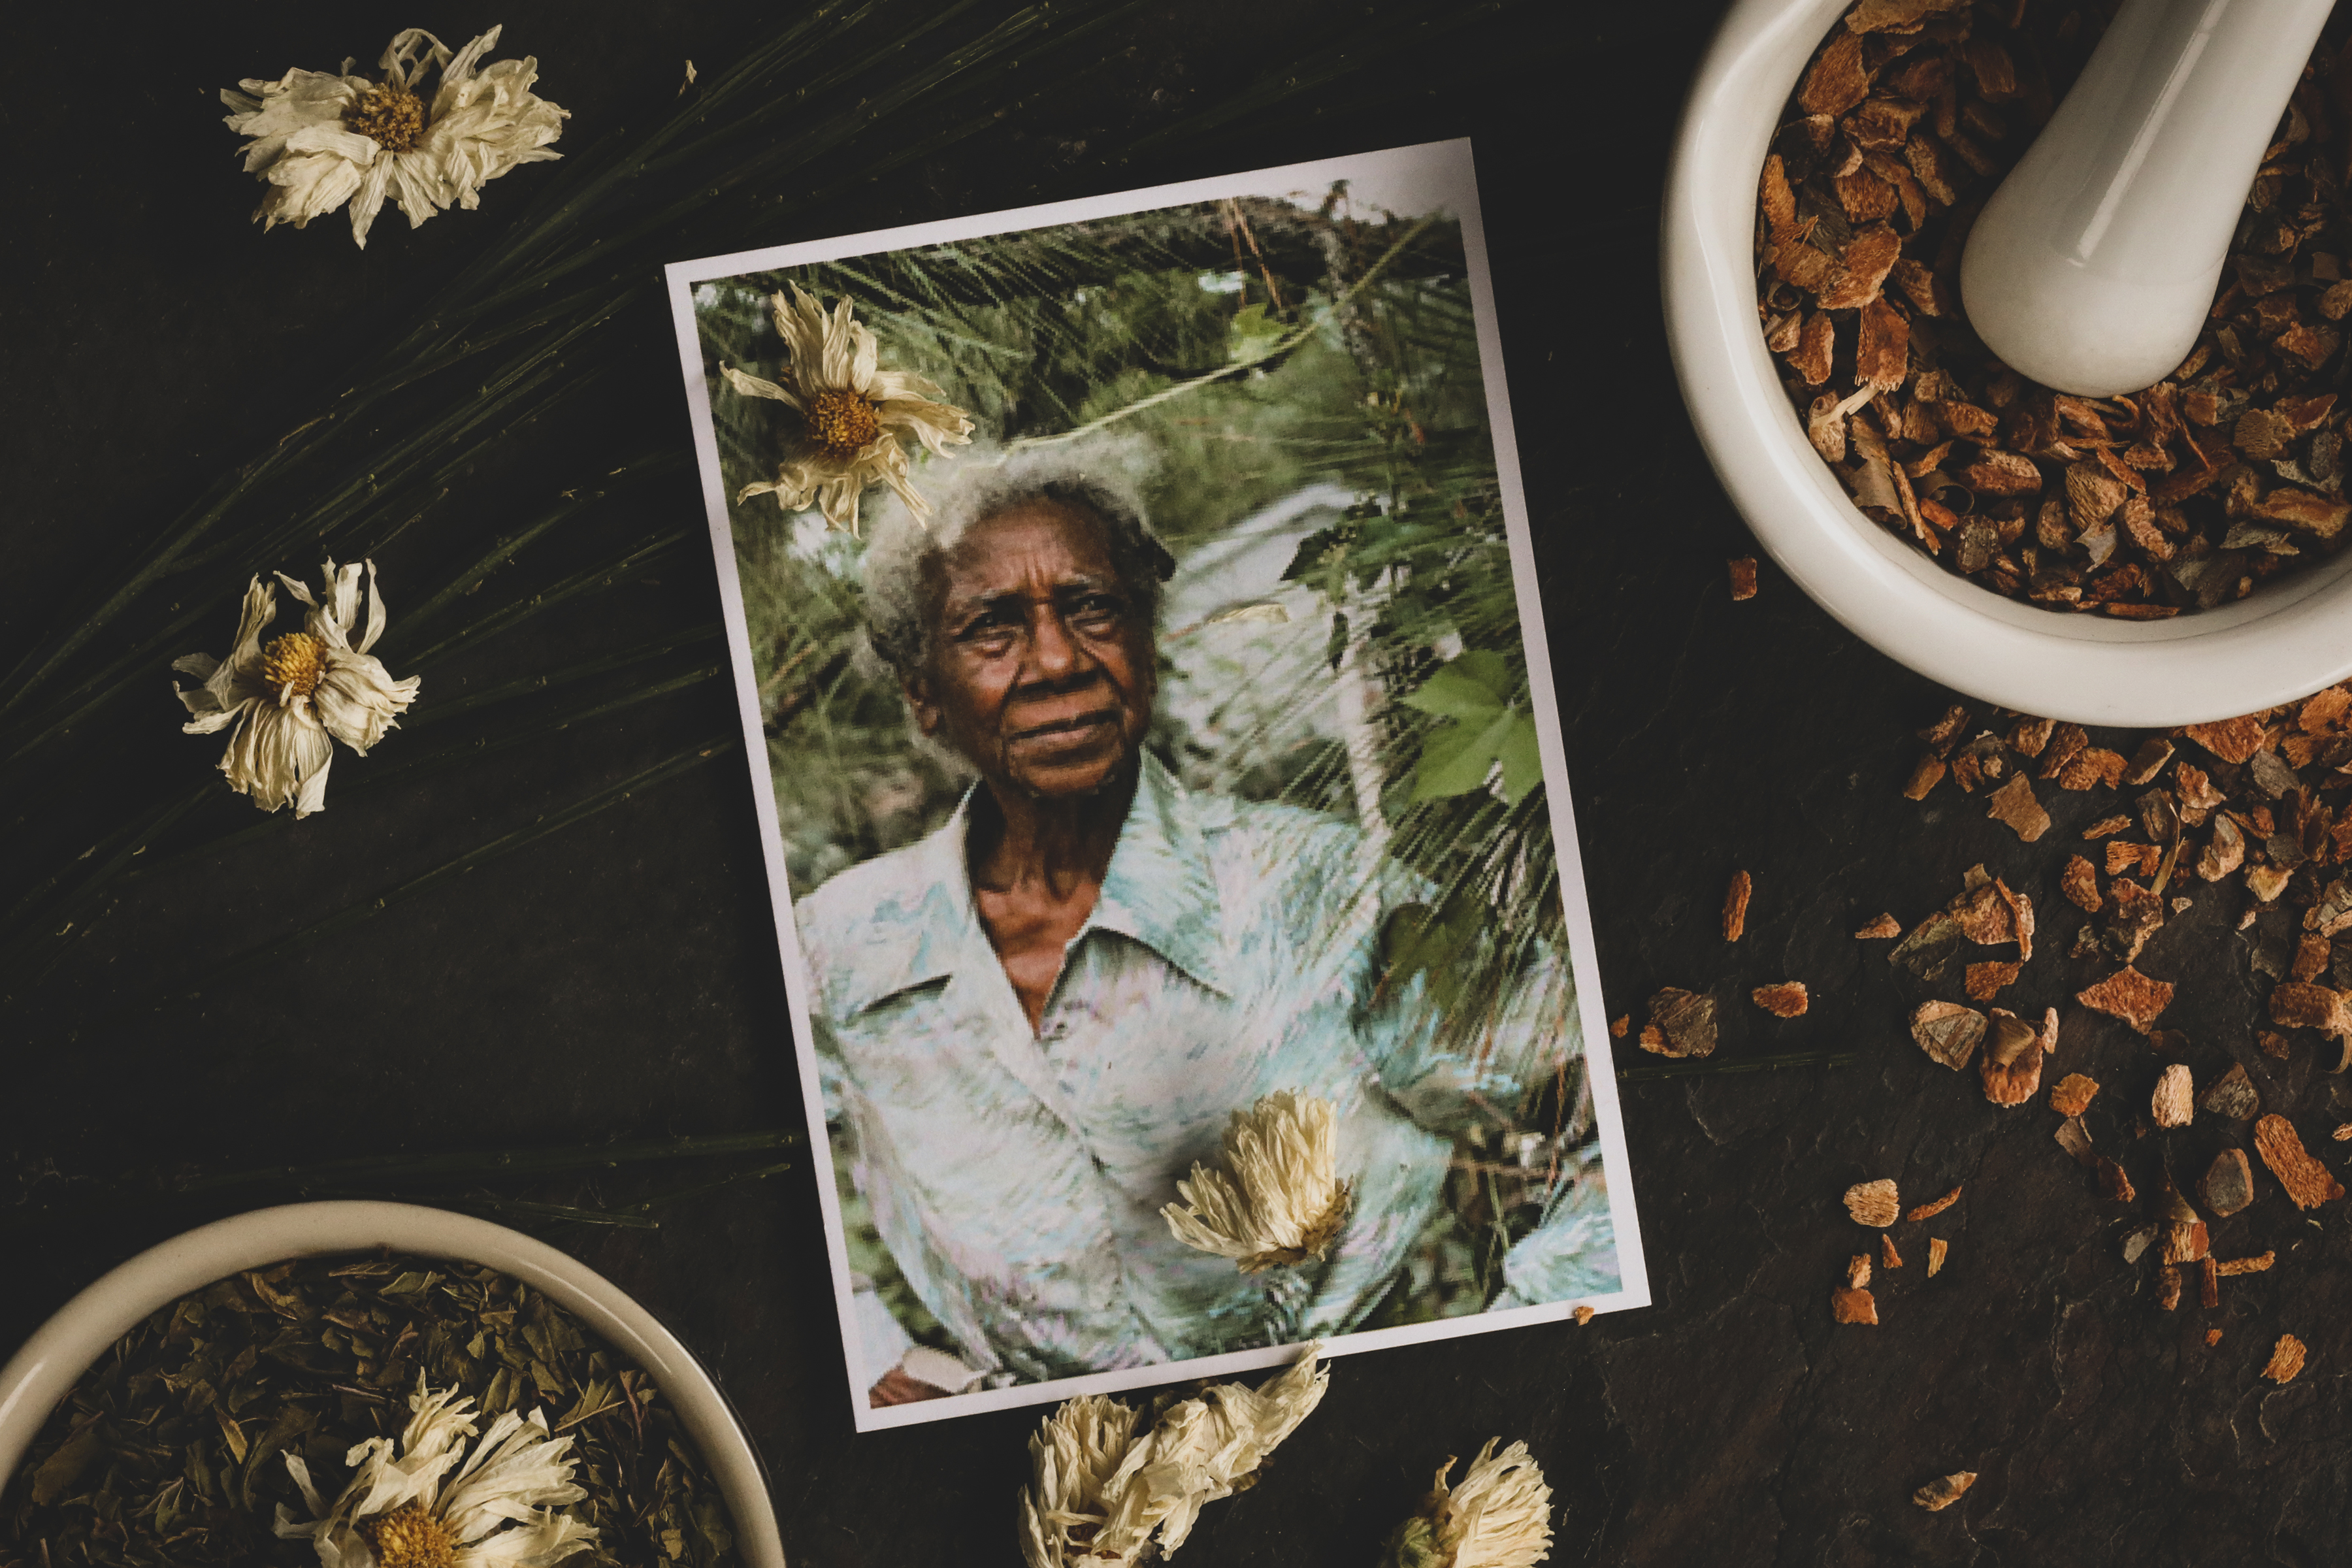 Emma Dupree, an herbalist and healer who brought herbal remedies to the people in her North Carolina community.